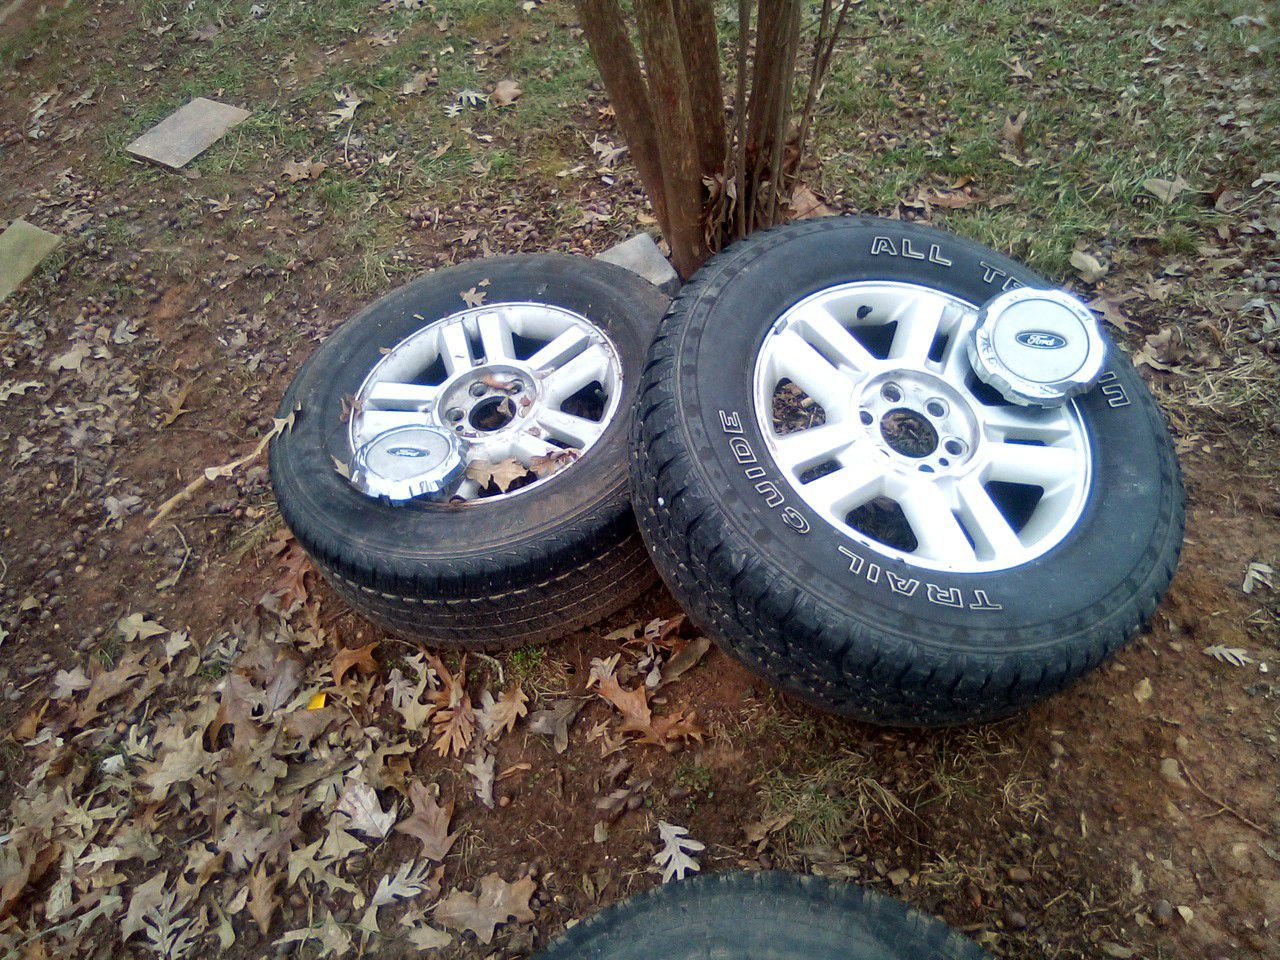 Photo Ive got two spare wheels for a 2004 f150 will fit an 03 to an 05 6 lug tires do not match but are the same size both are all terrain